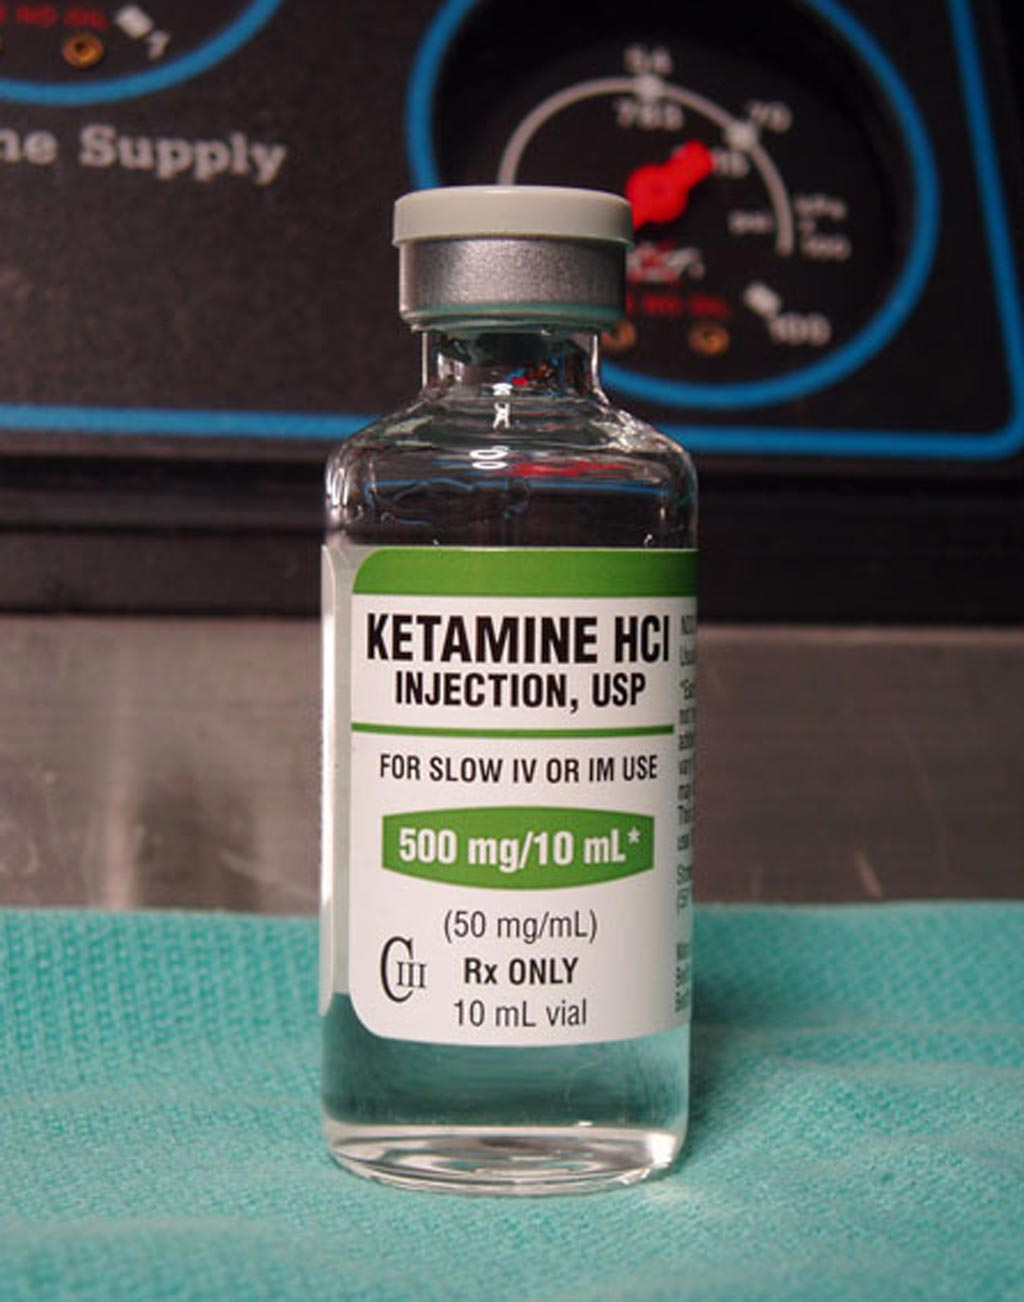 Image: According to a new study, ketamine can rapidly reduce suicidal thoughts in the depressed (Photo courtesy of Erowid).